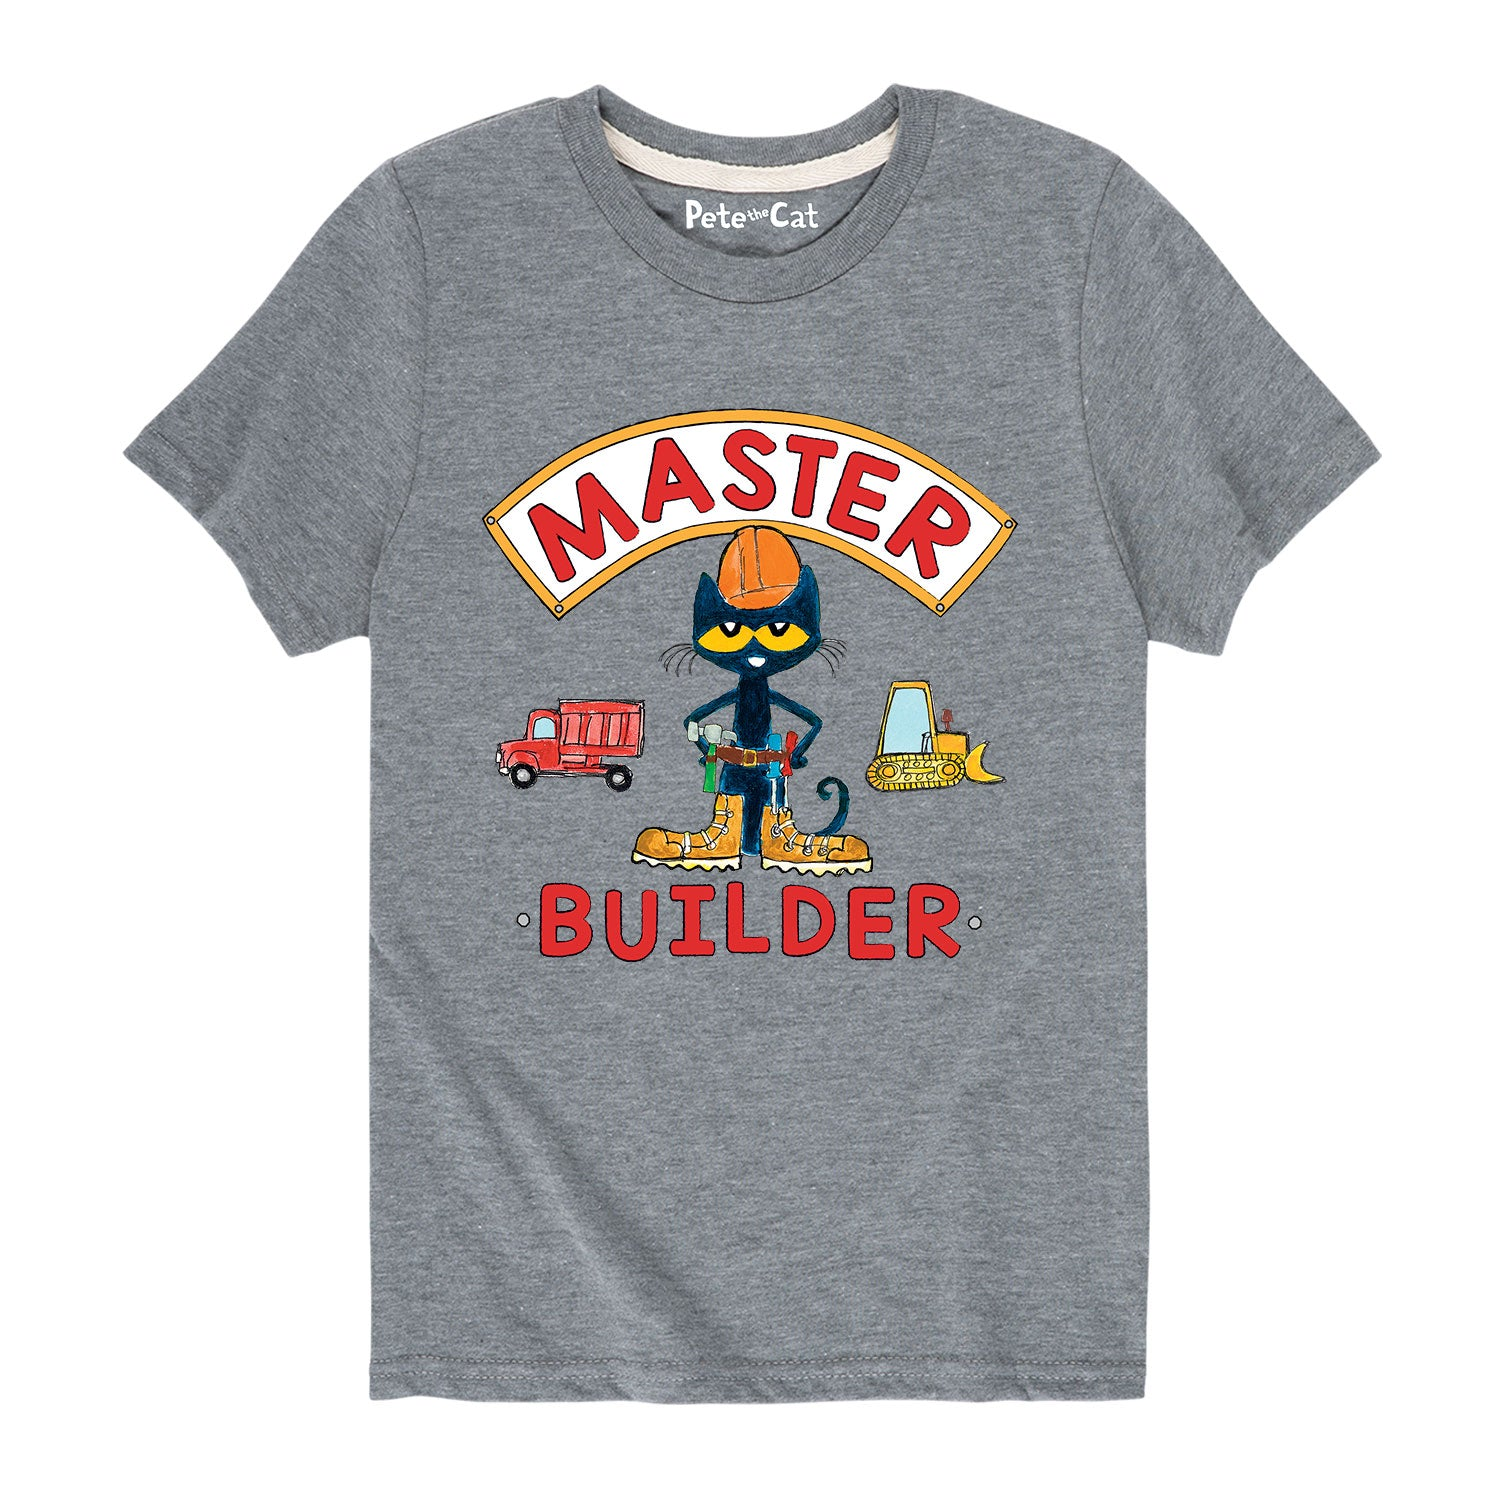 Master Builder - Youth & Toddler Short Sleeve T-Shirt